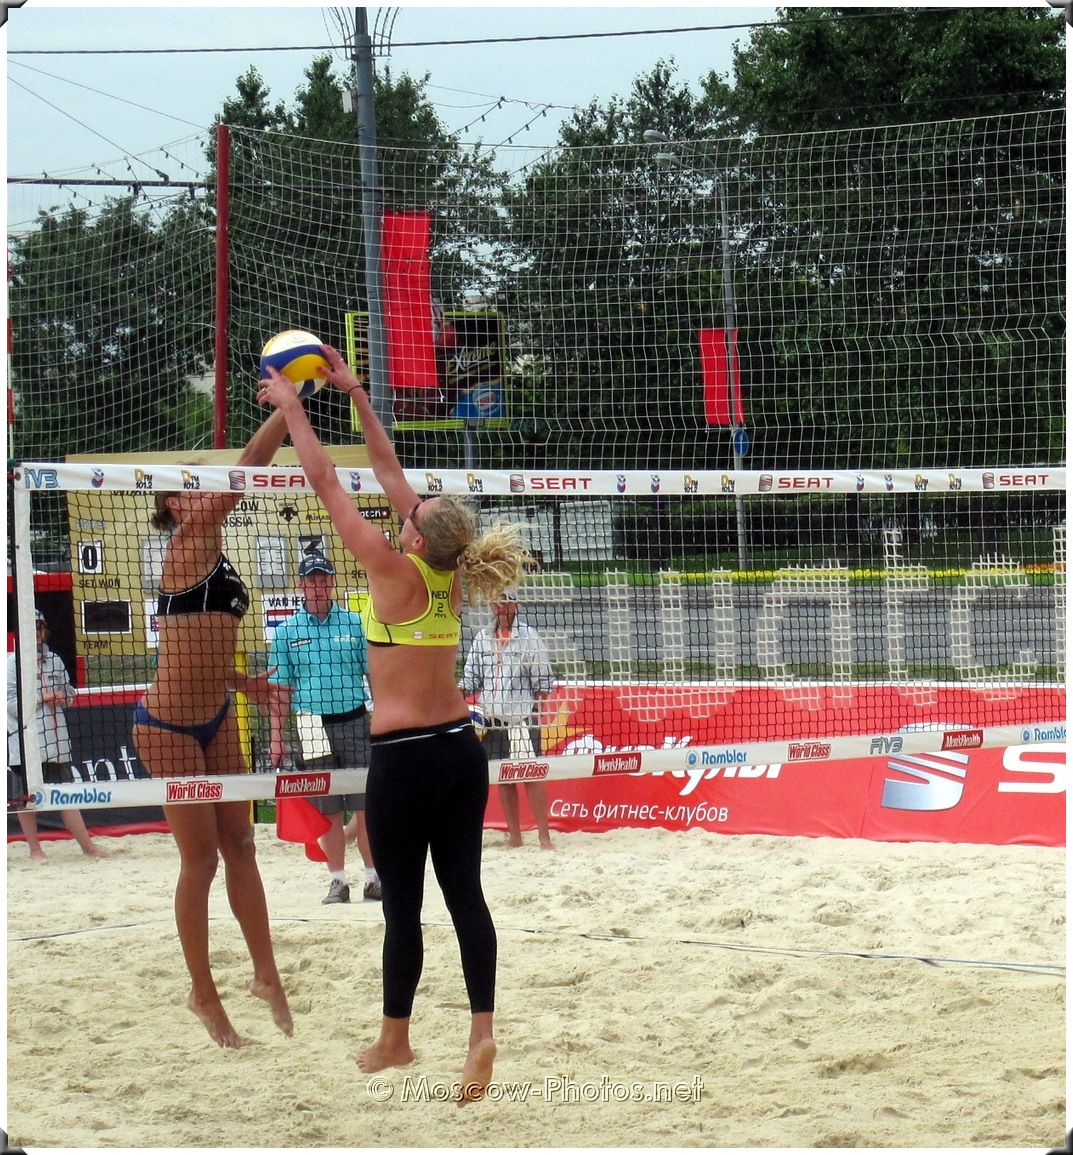 BEACH VOLLEYBALL SPIKE AGAINST THE BLOCK